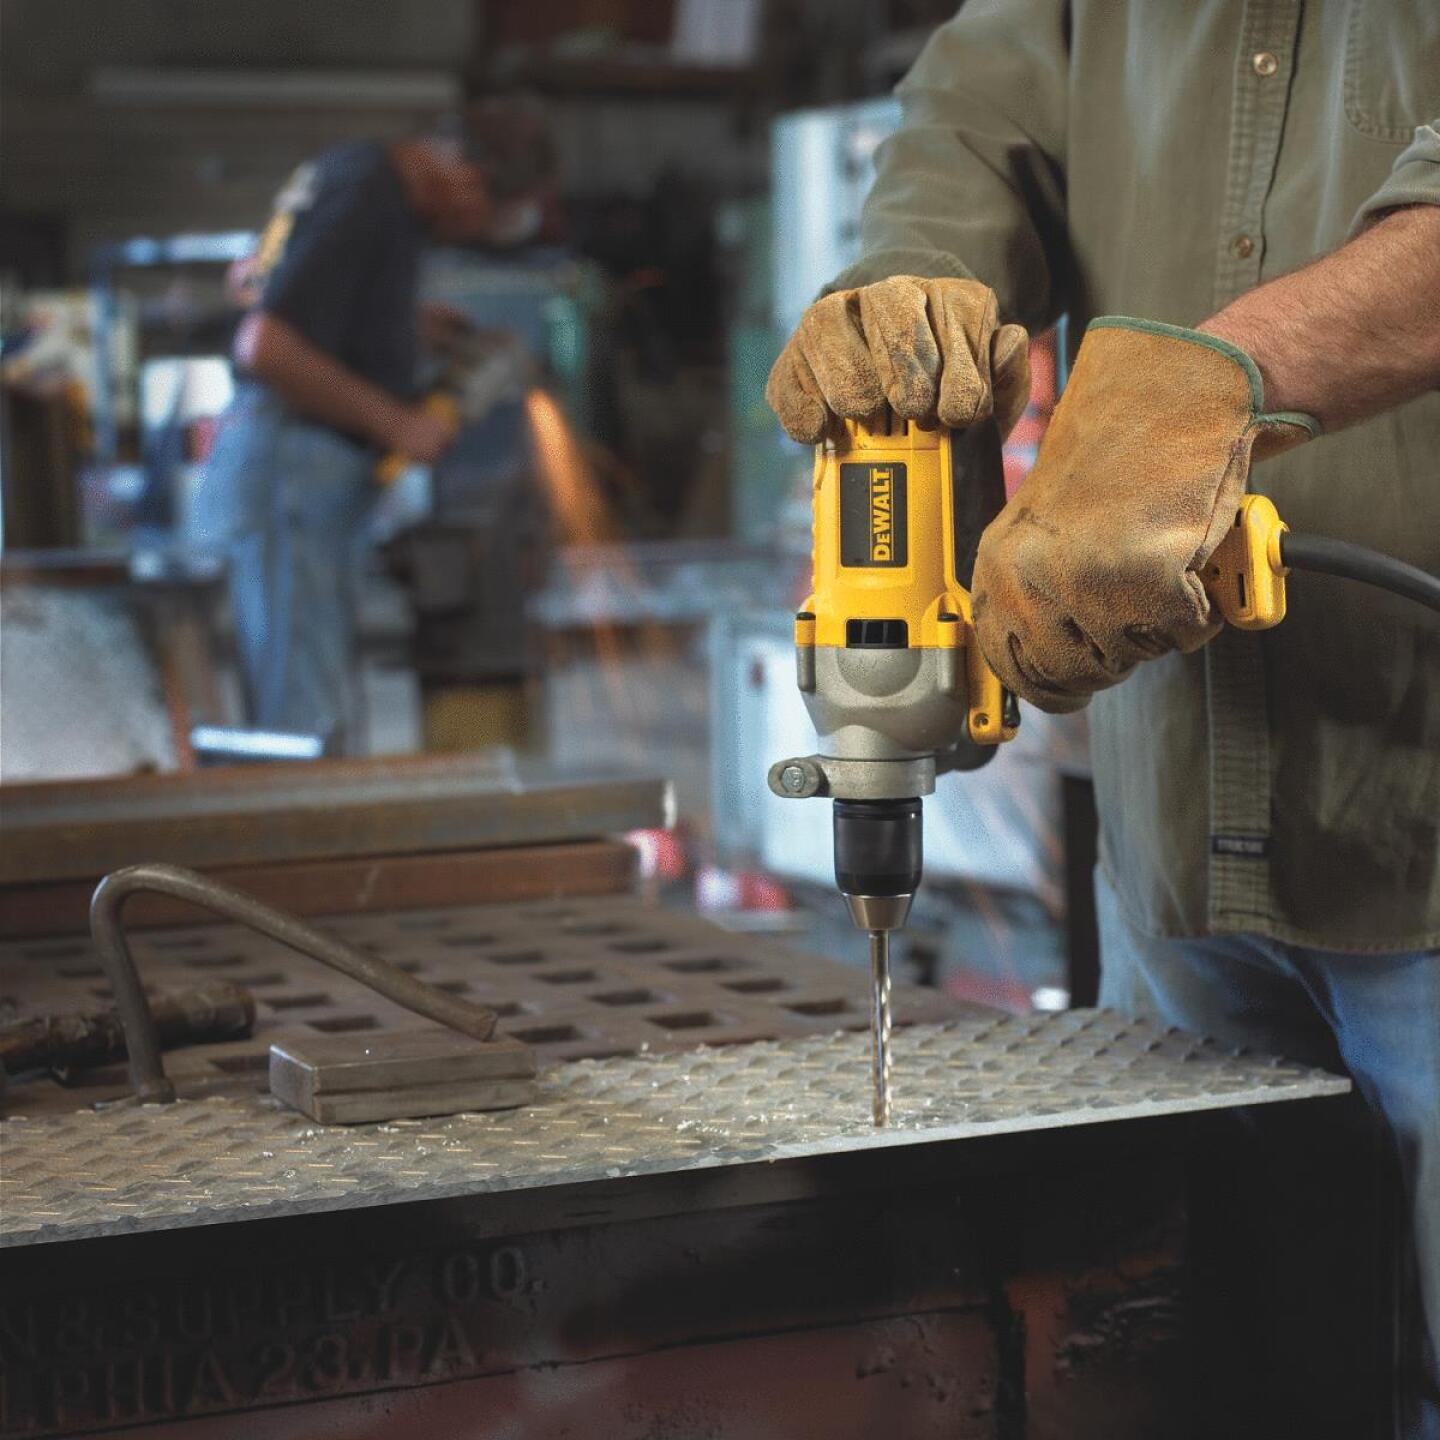 DeWalt 1/2 In. 10-Amp Keyless Electric Drill with Mid-Handle Grip Image 5